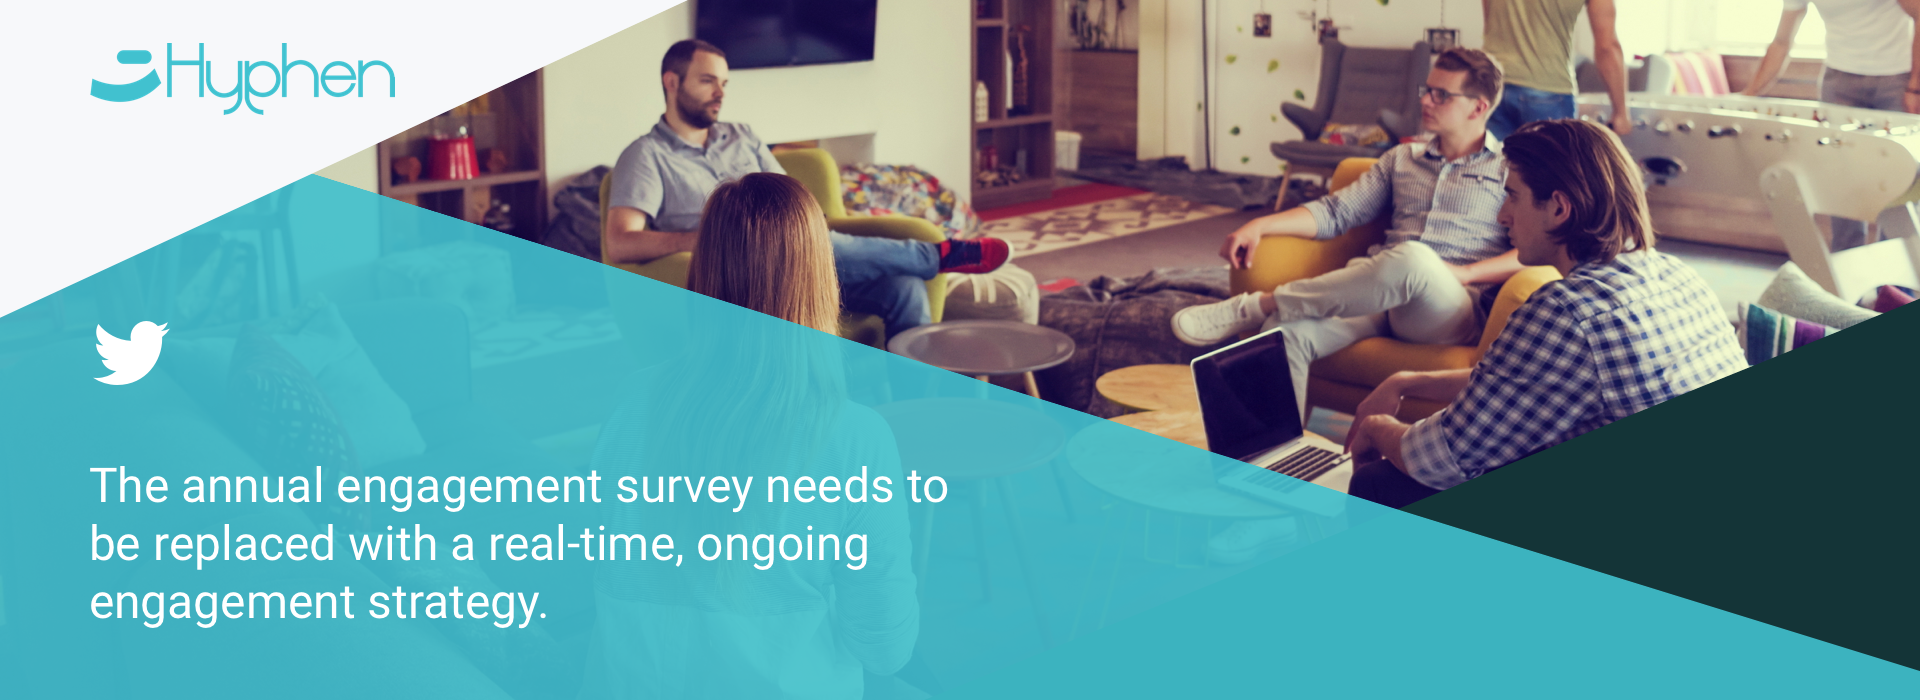 The annual engagement survey needs to be replaced with a real-time, ongoing engagement strategy.